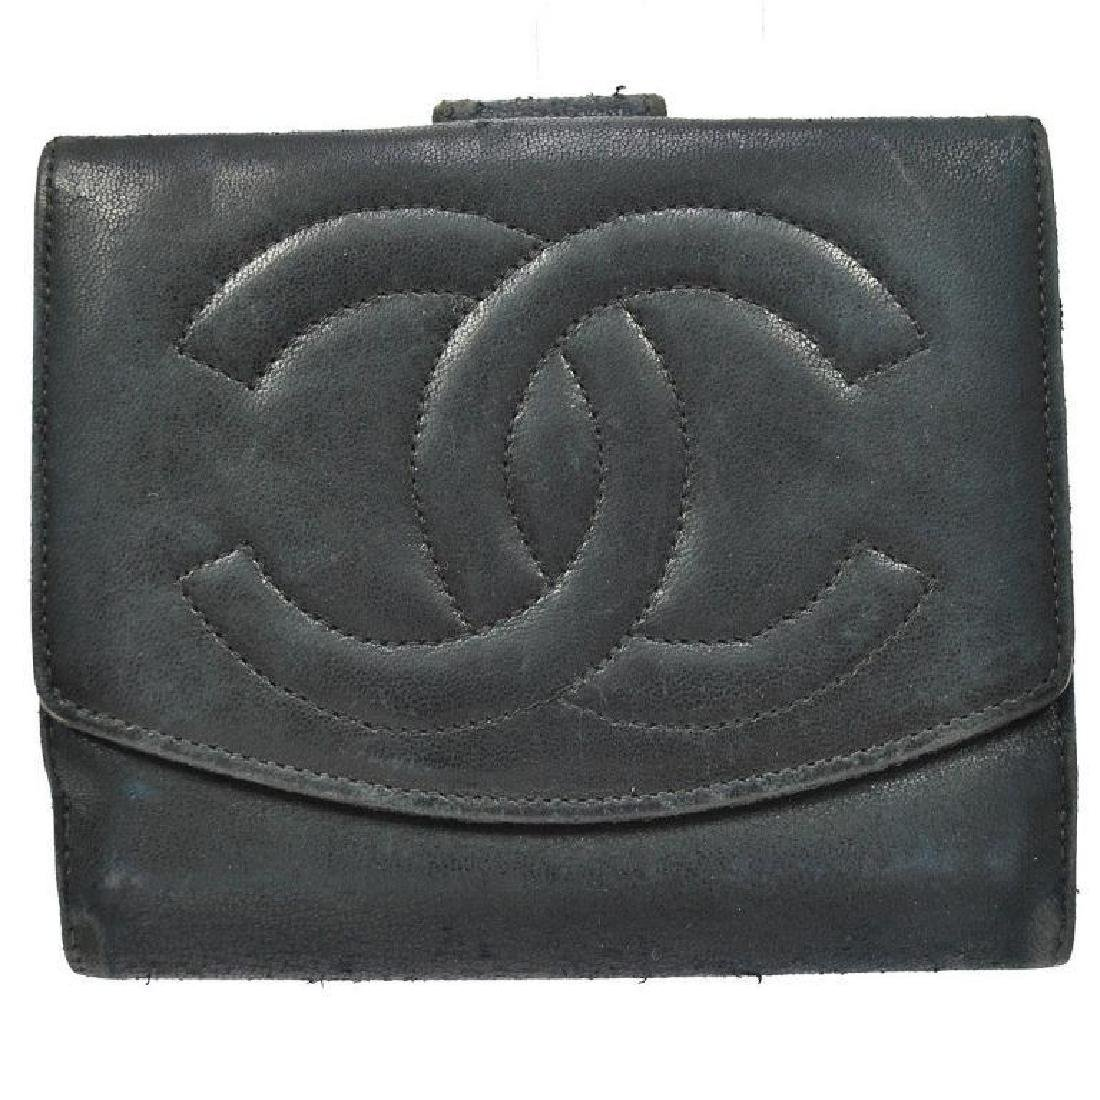 Authentic Vintage CHANEL Leather Wallet - 2